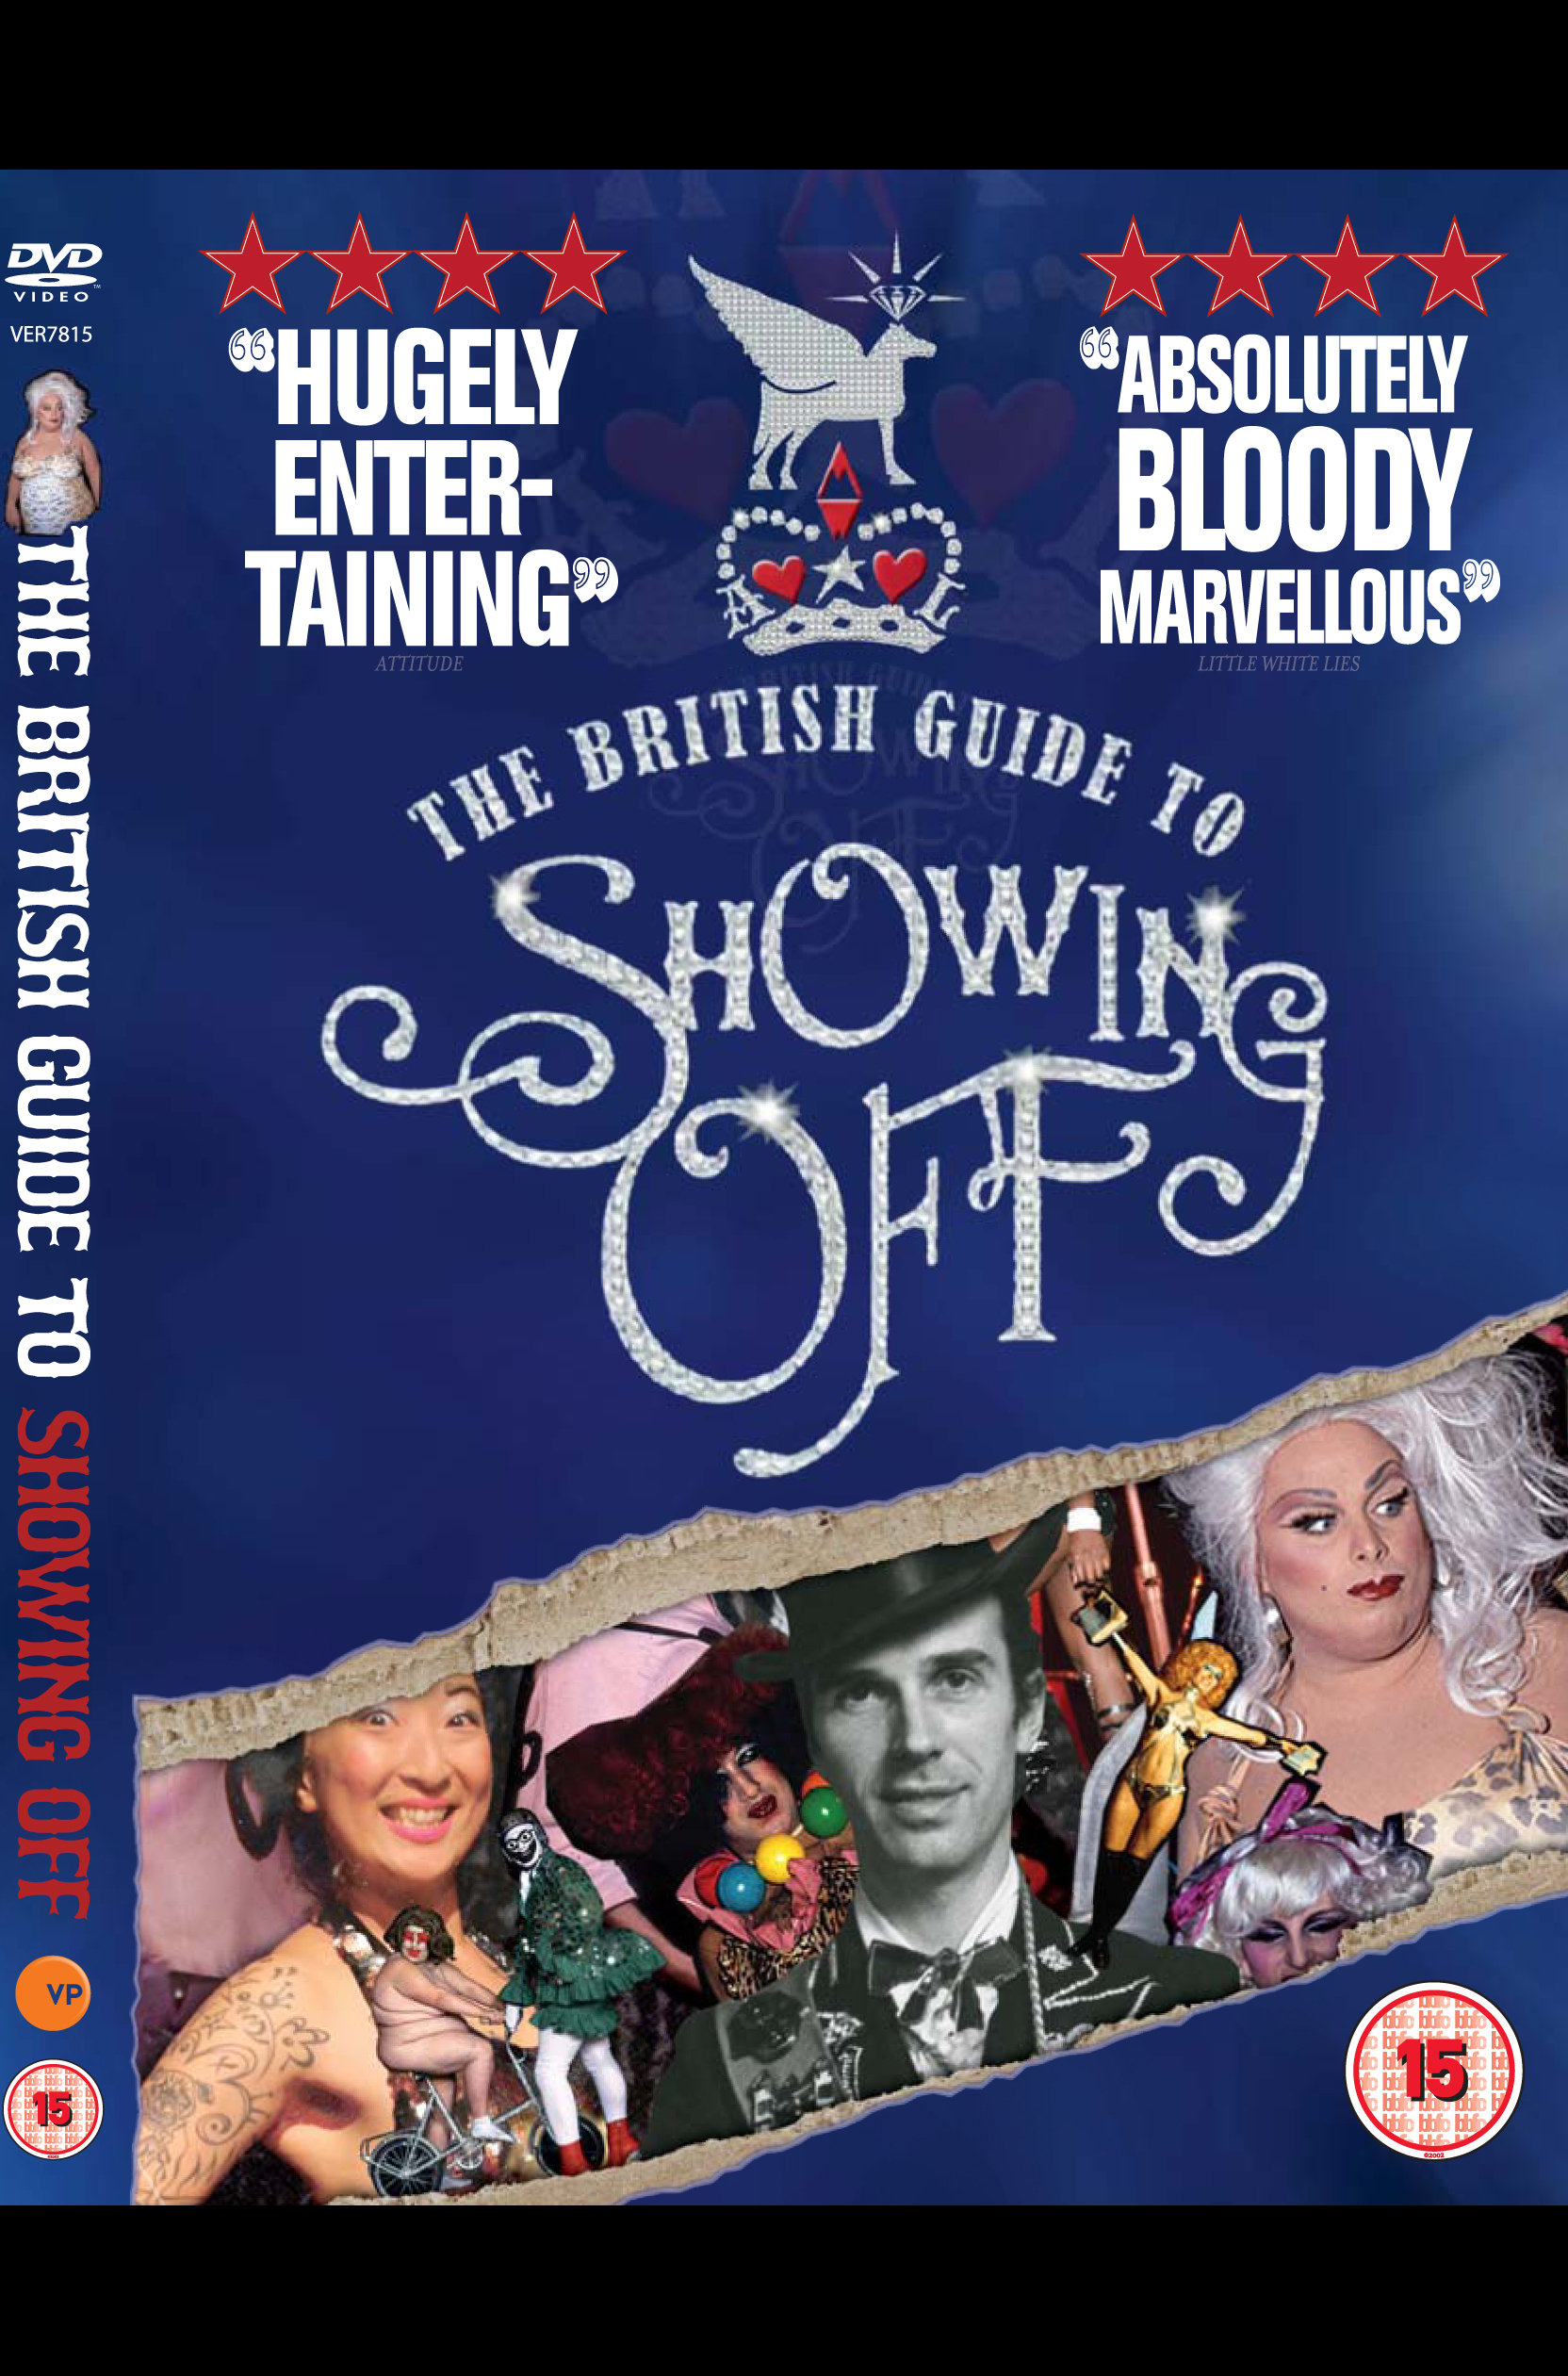 UK DVD cover by Verve Pictures, after theatrical release